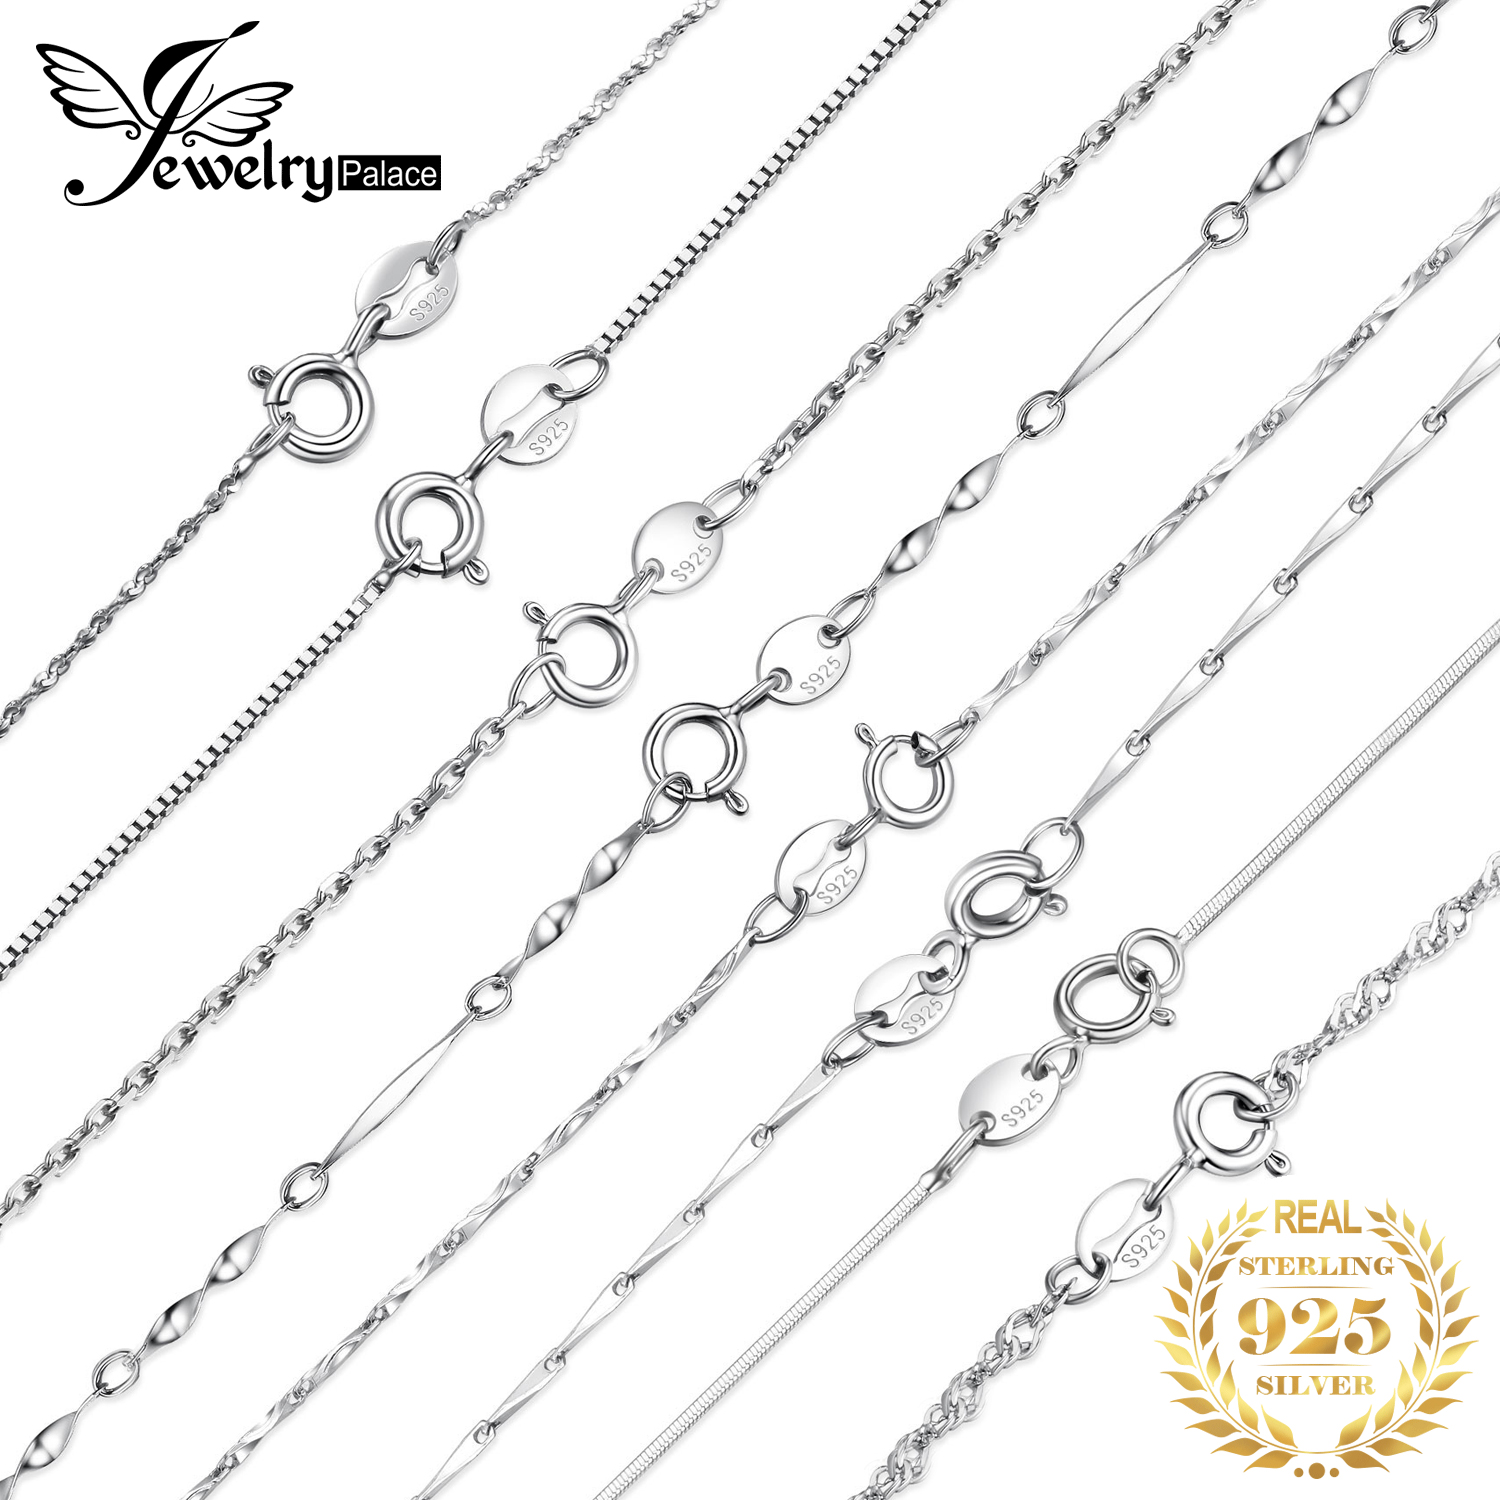 Jewelrypalace Chain Necklace Snake-Bar Twisted-Trace 925-Sterling-Silver Belcher Women